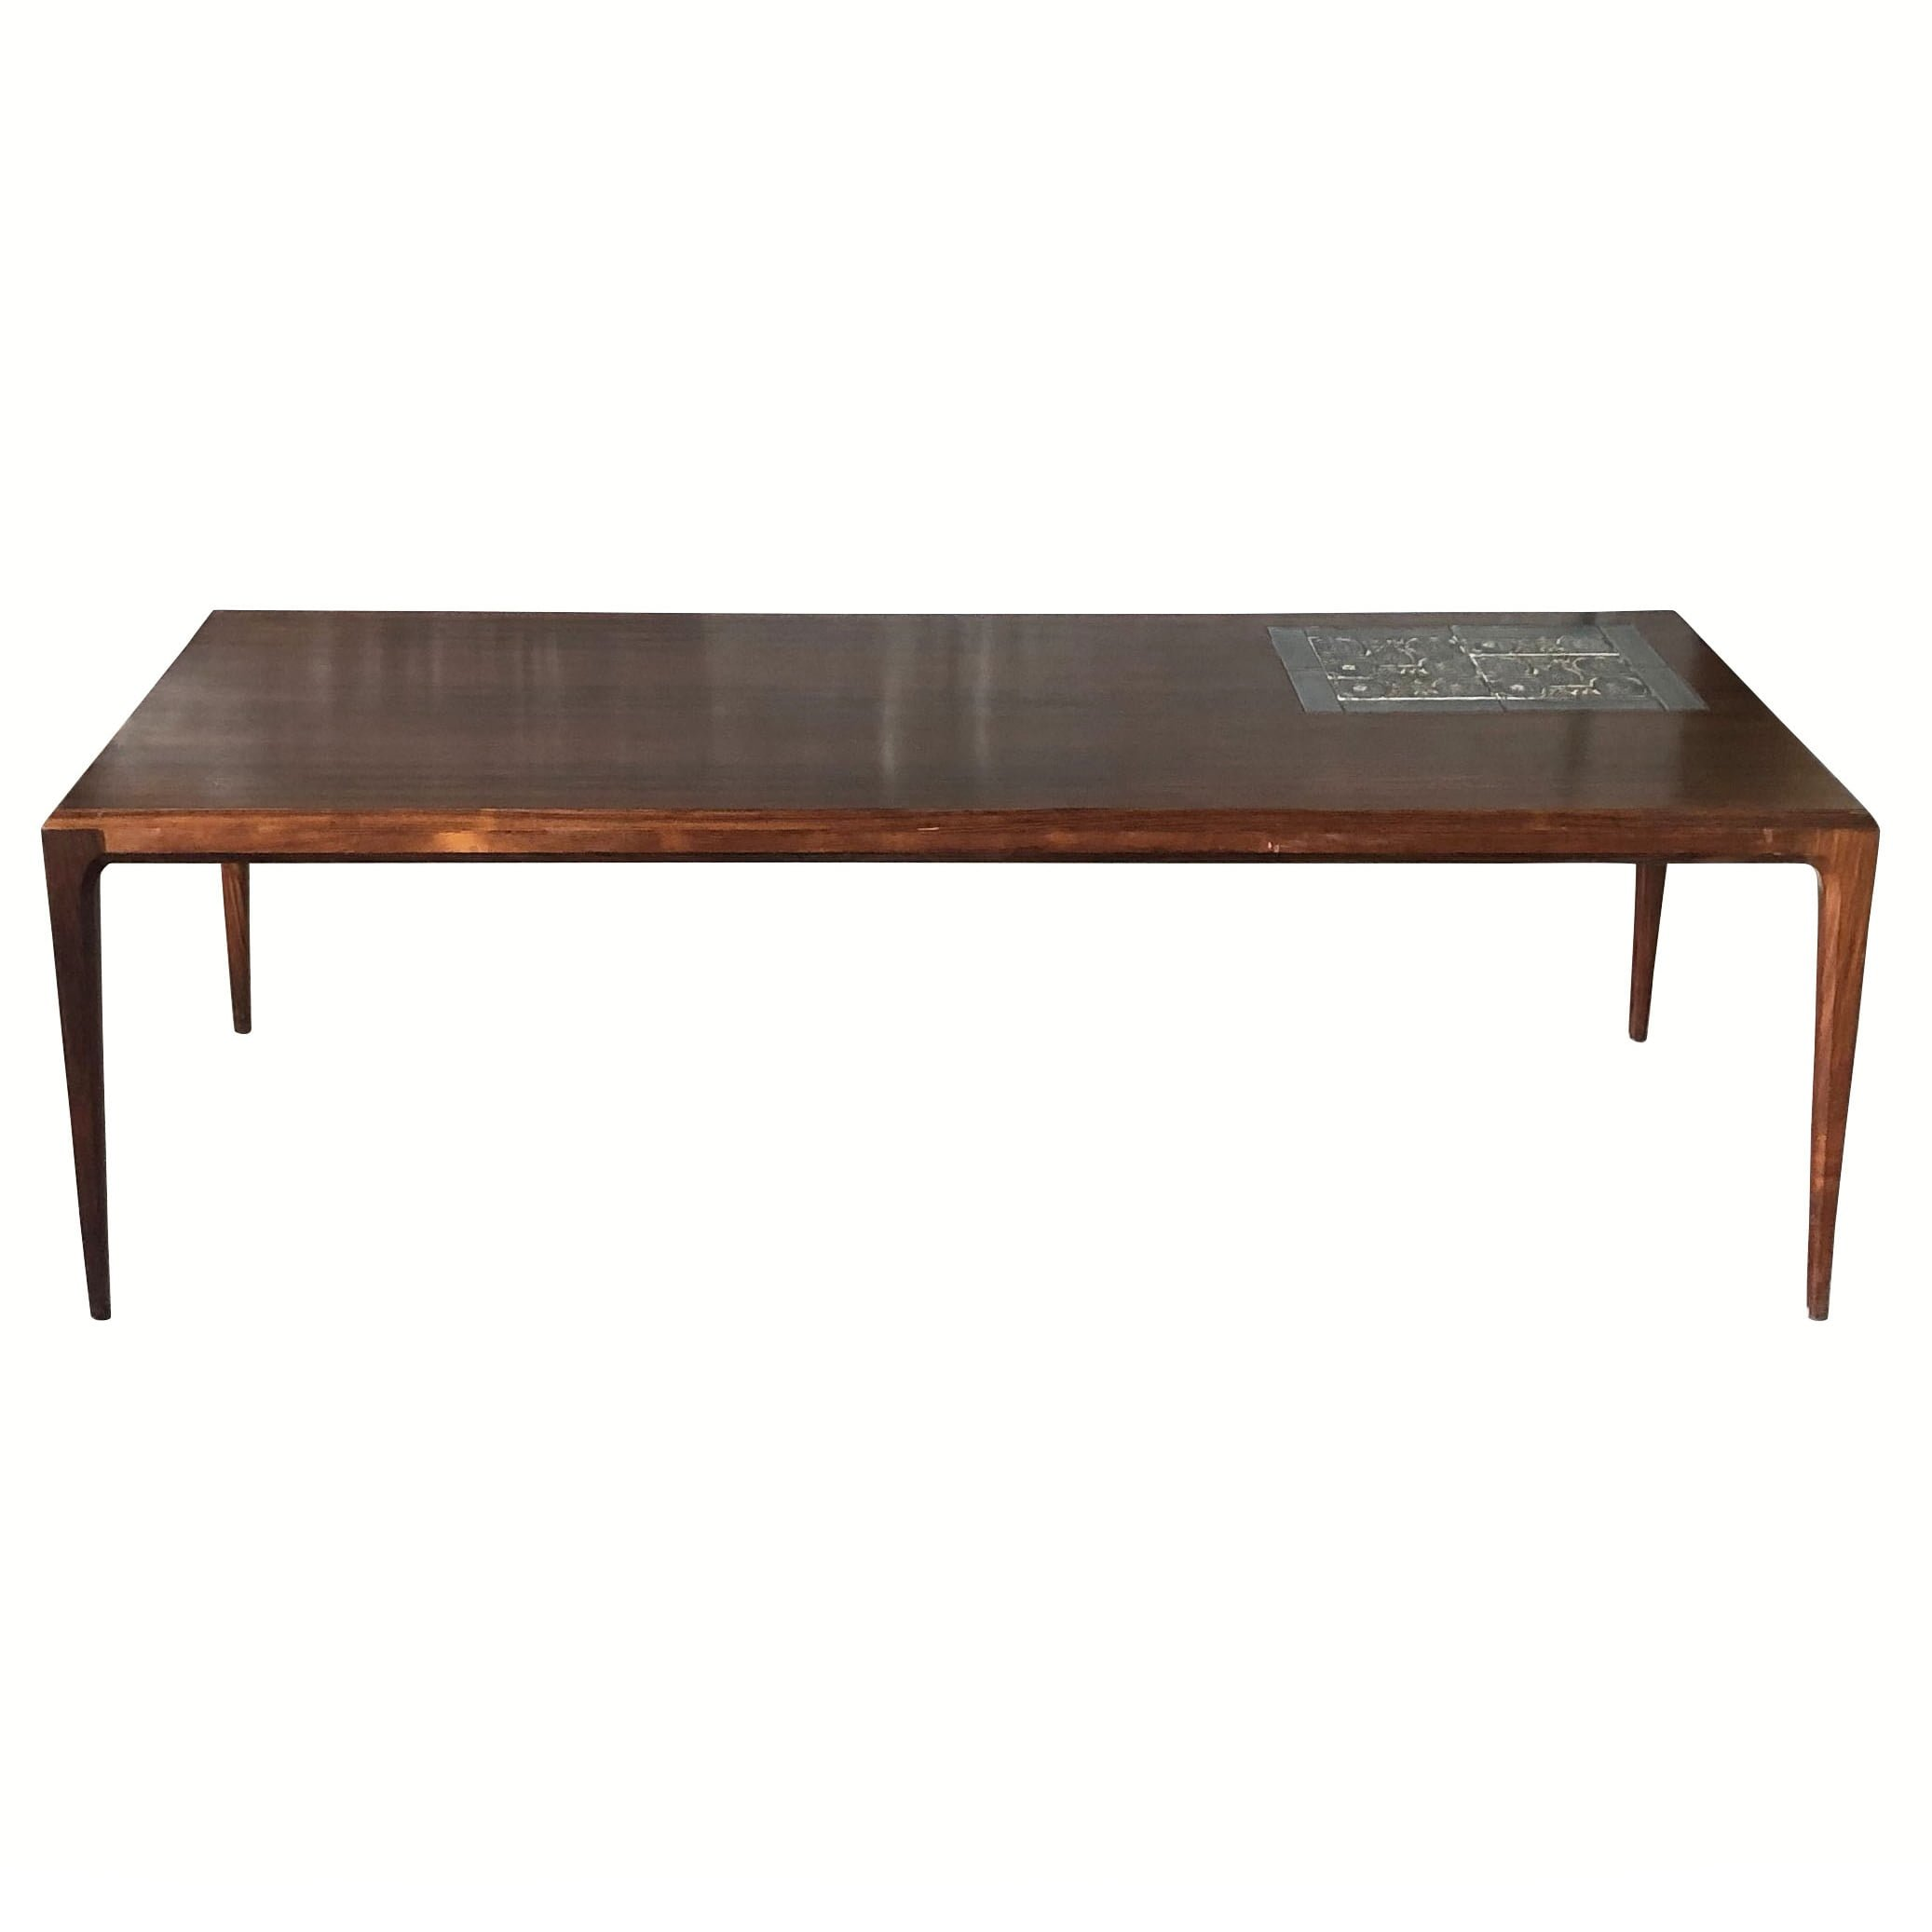 20th Century Danish Rosewood Coffee Table by Severin Hansen & Nils Thorsson